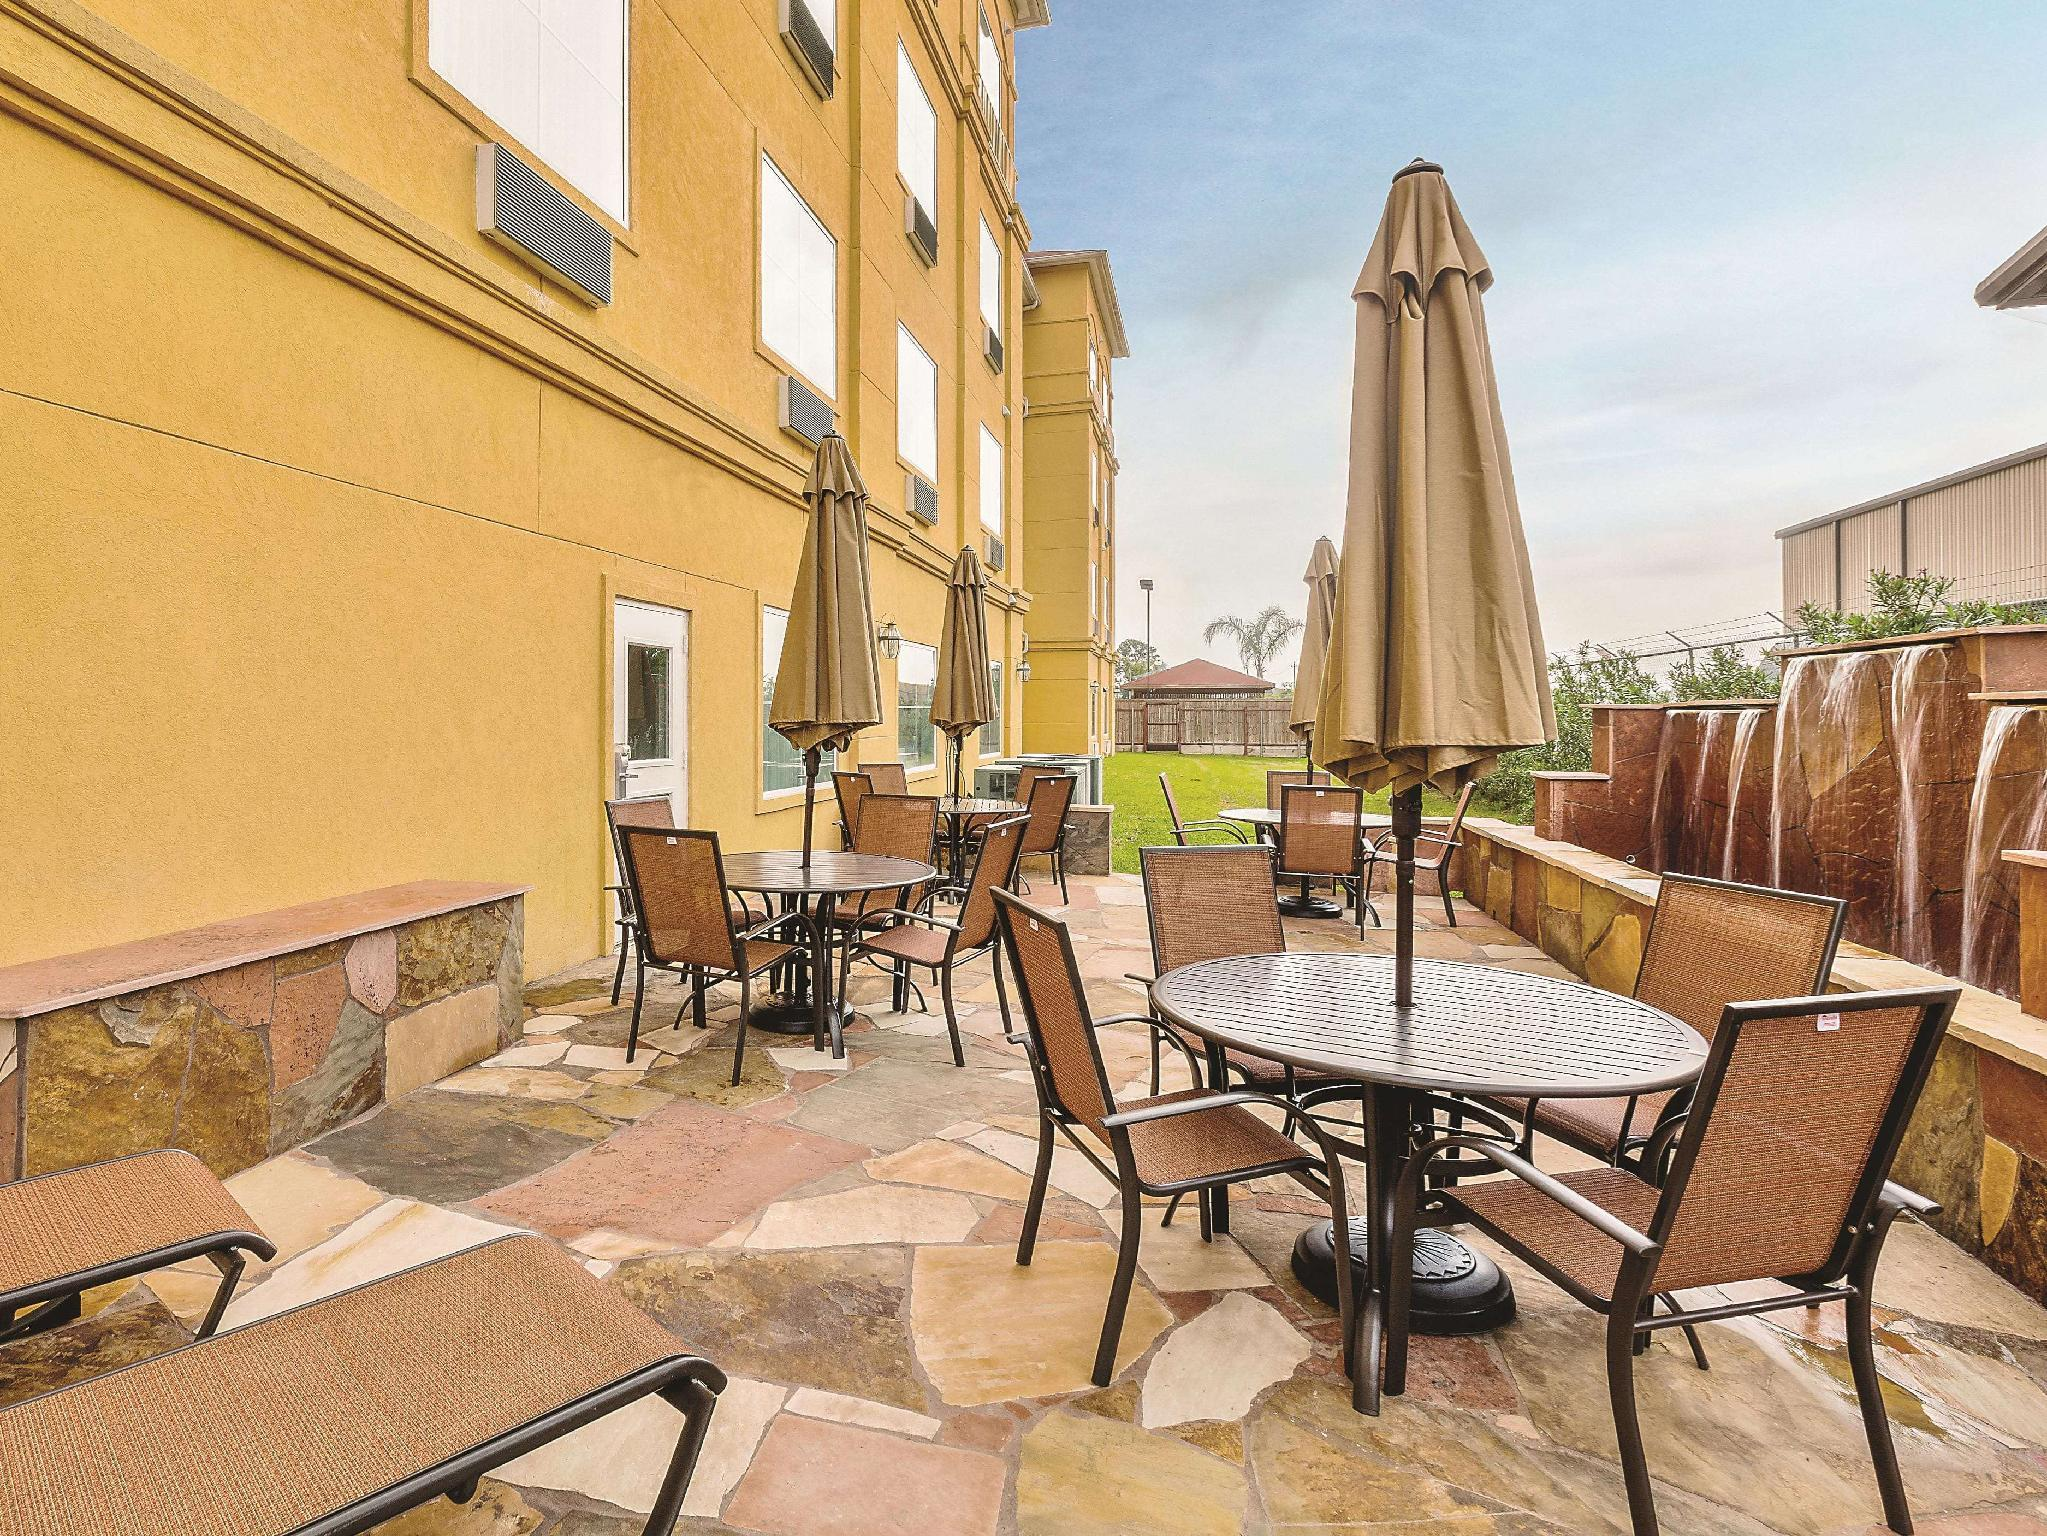 La Quinta Inn And Suites By Wyndham Houston Channelview